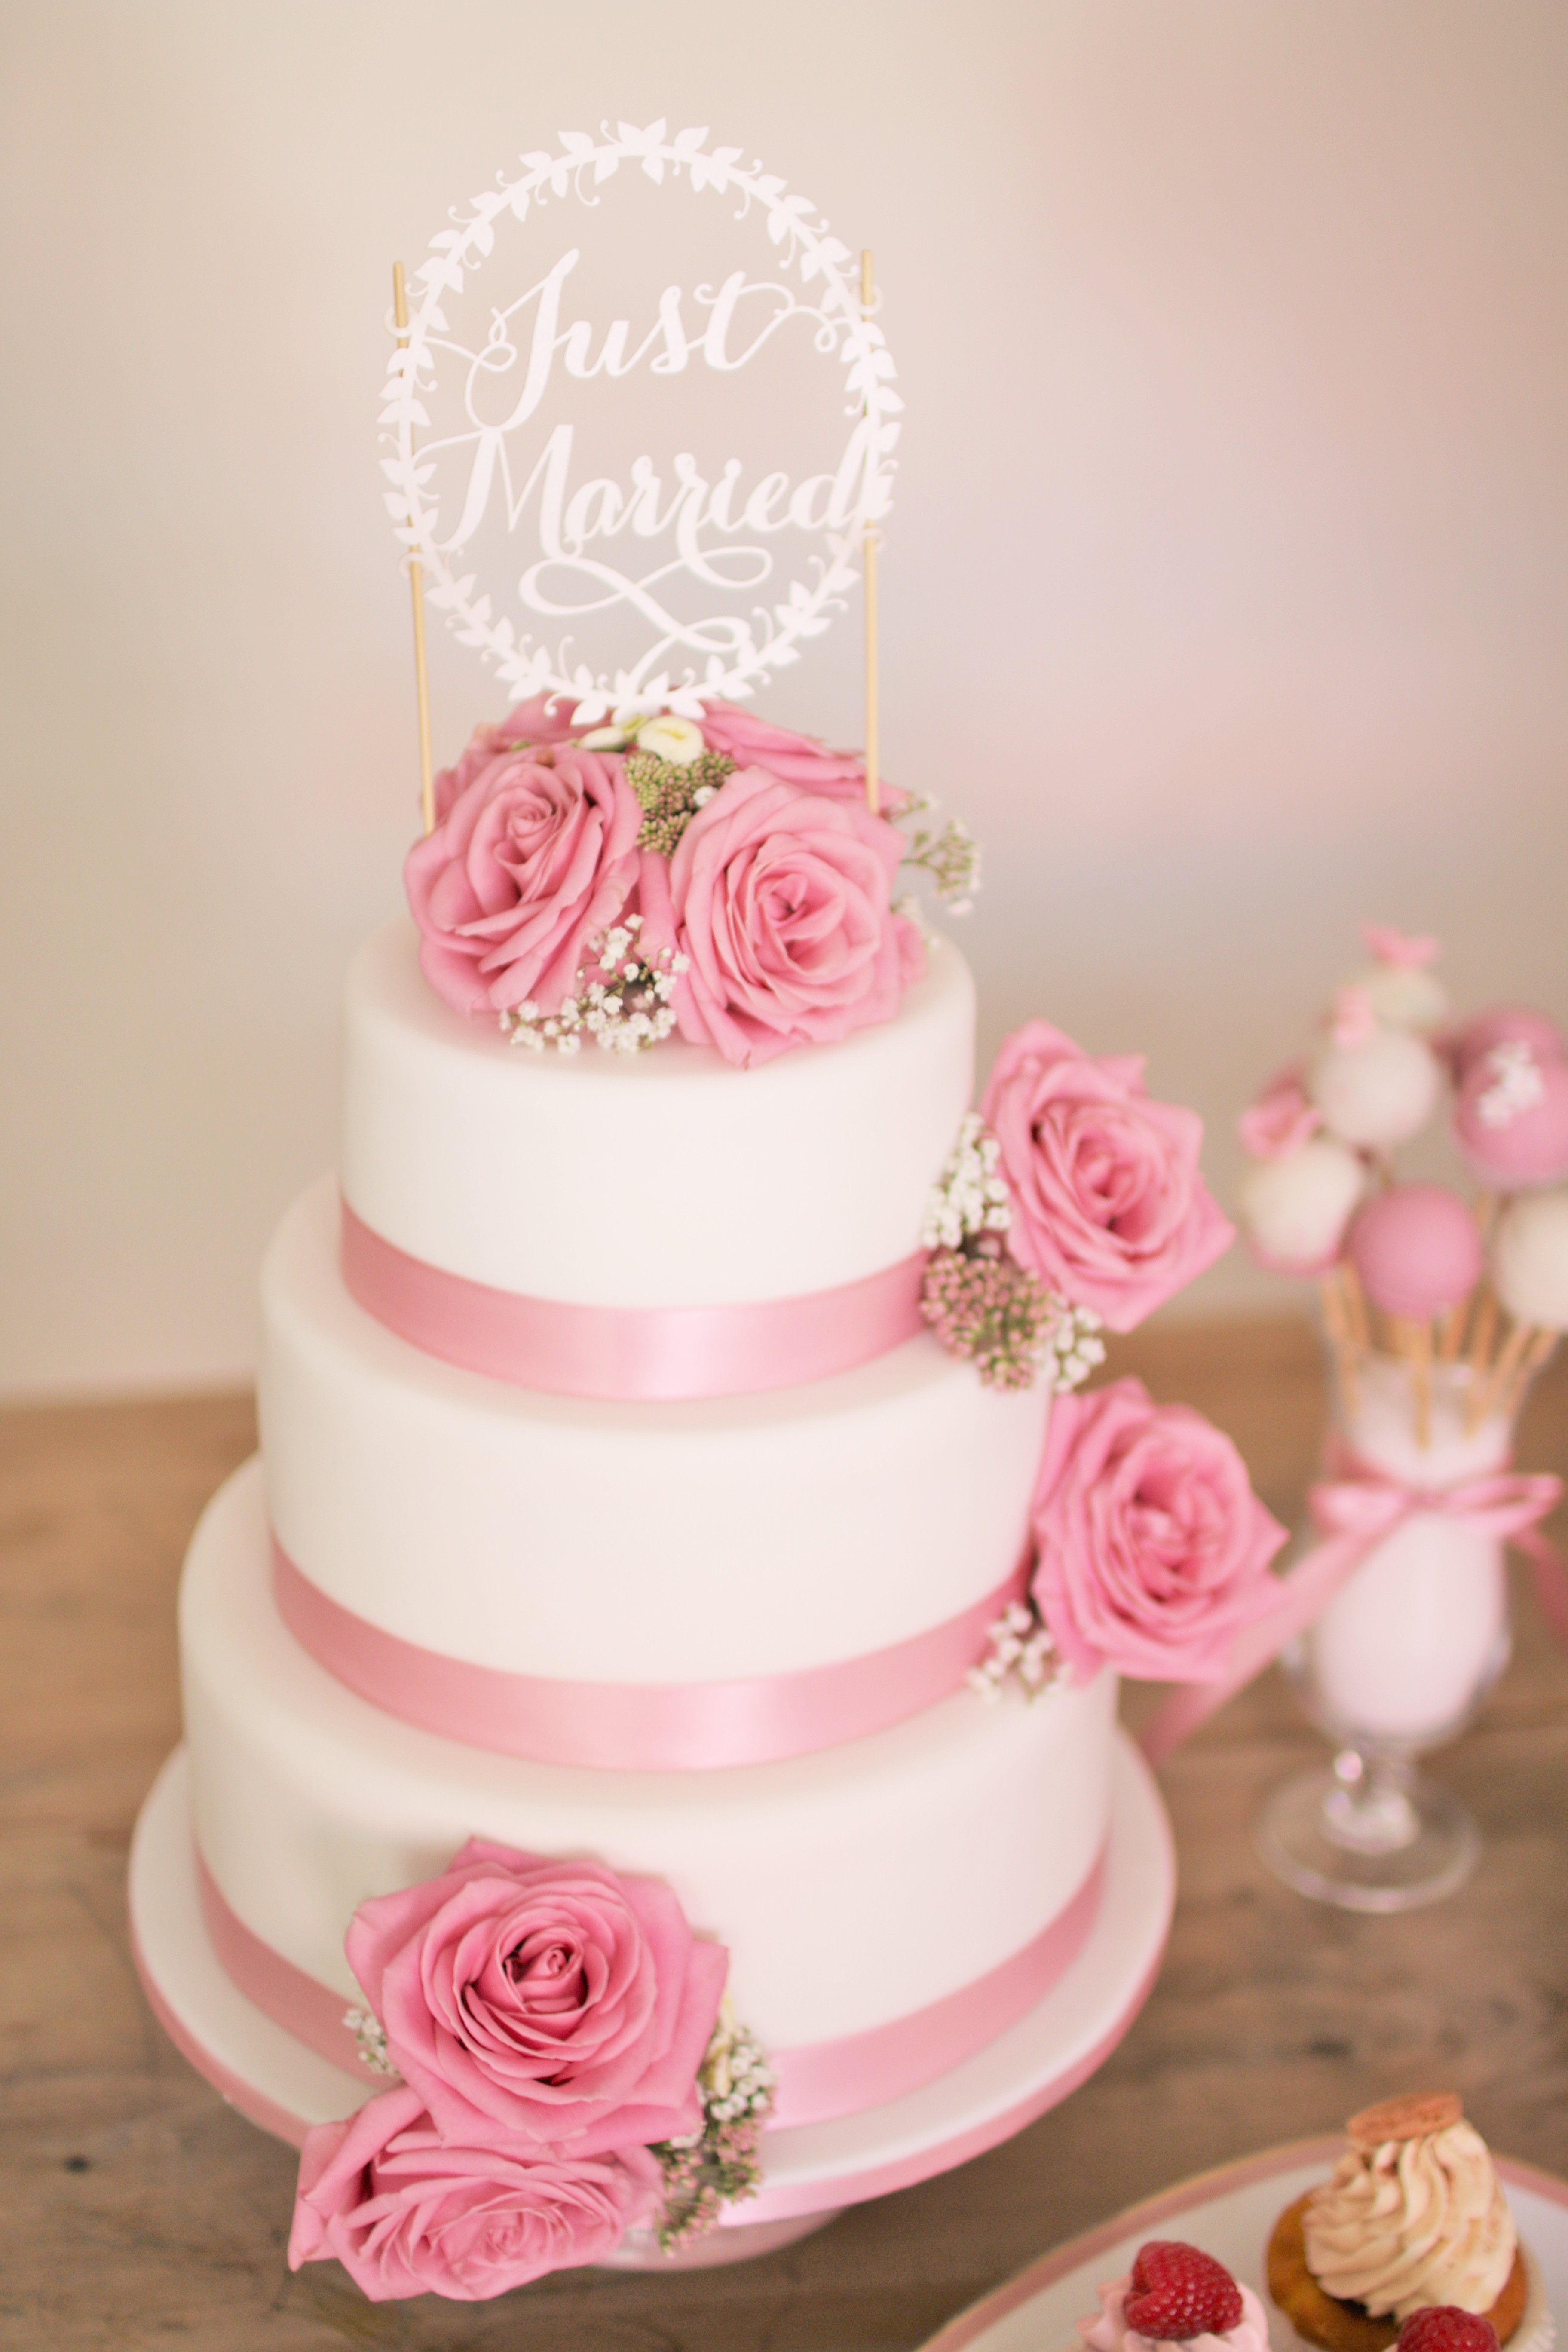 www.KUCHENmitSTIL.at - The finest pastry - a lovely 3 tier vintage ...